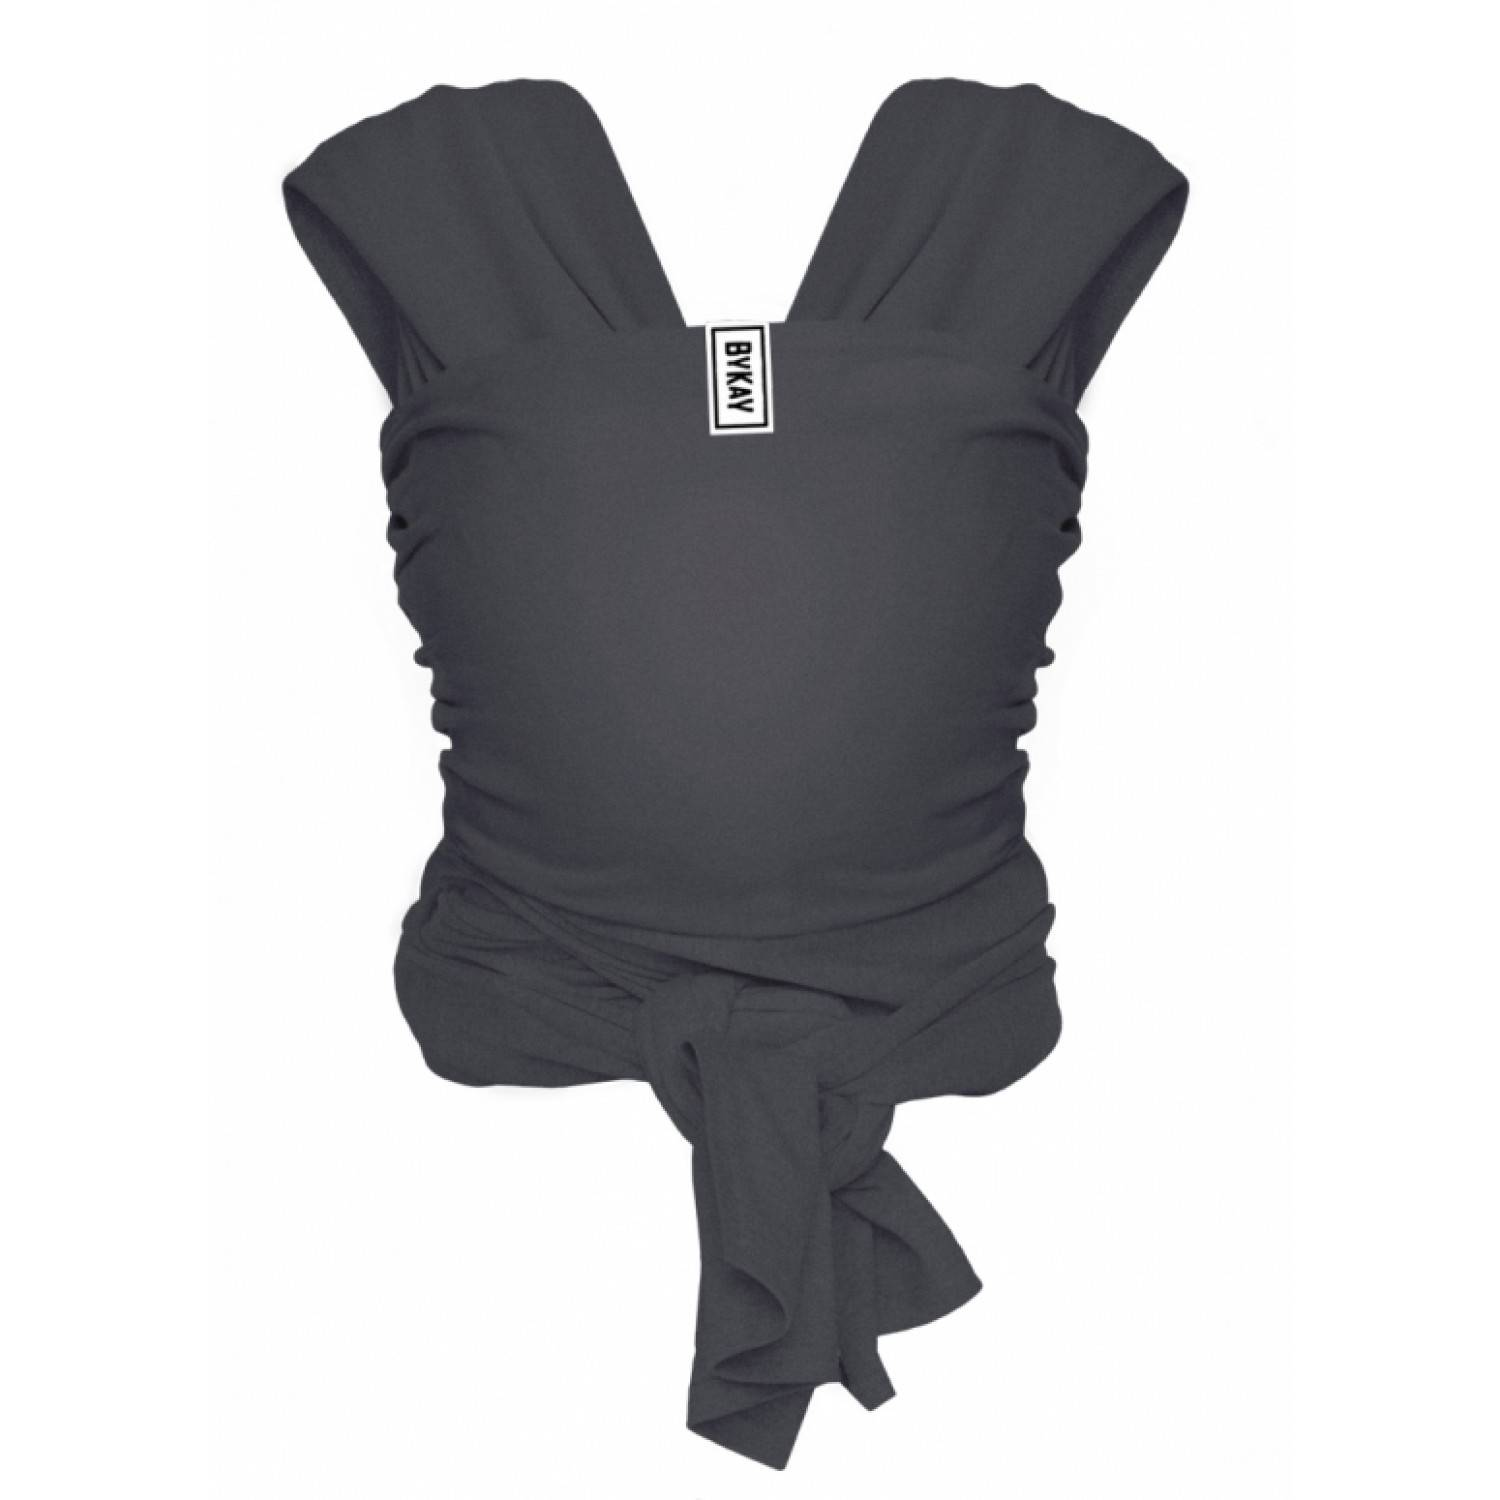 Bykay Écharpe de portage Gris Anthracite Taille M - Bykay